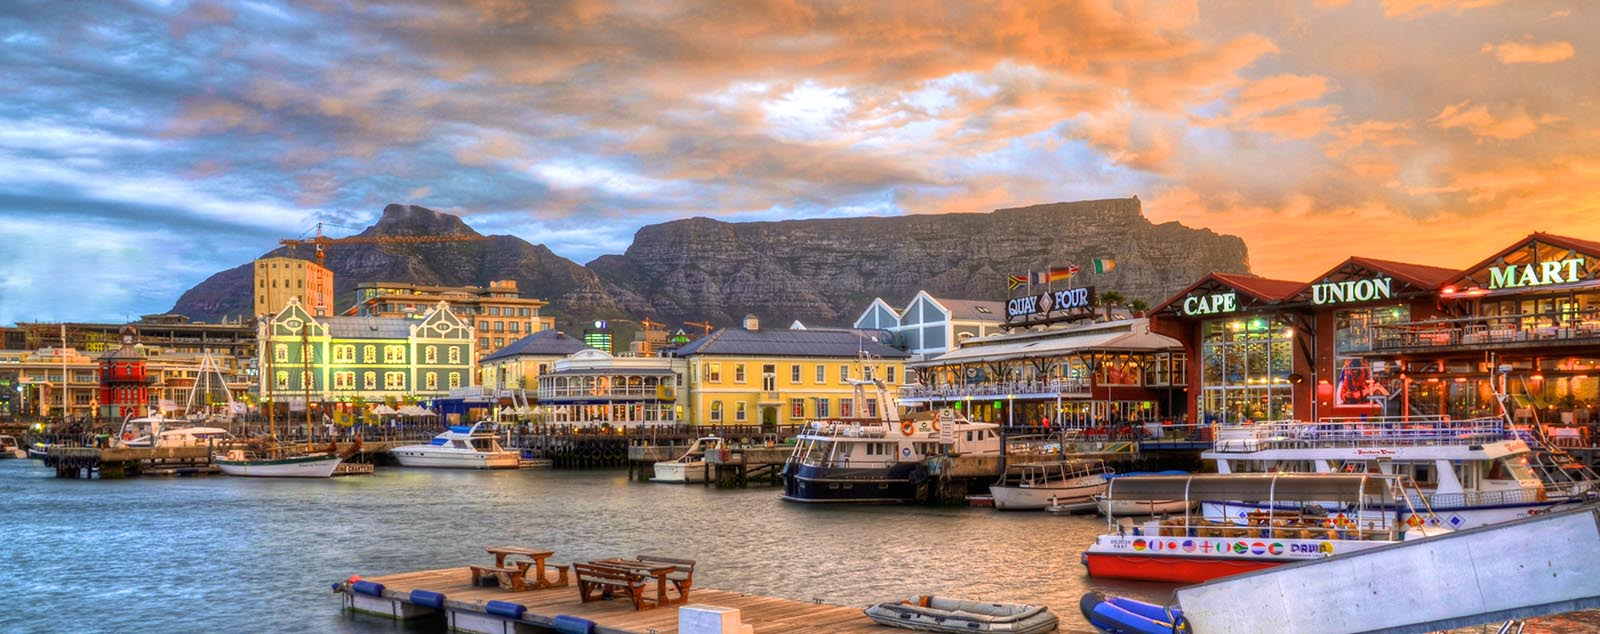 The waterfront in Cape Town with dazzling sky